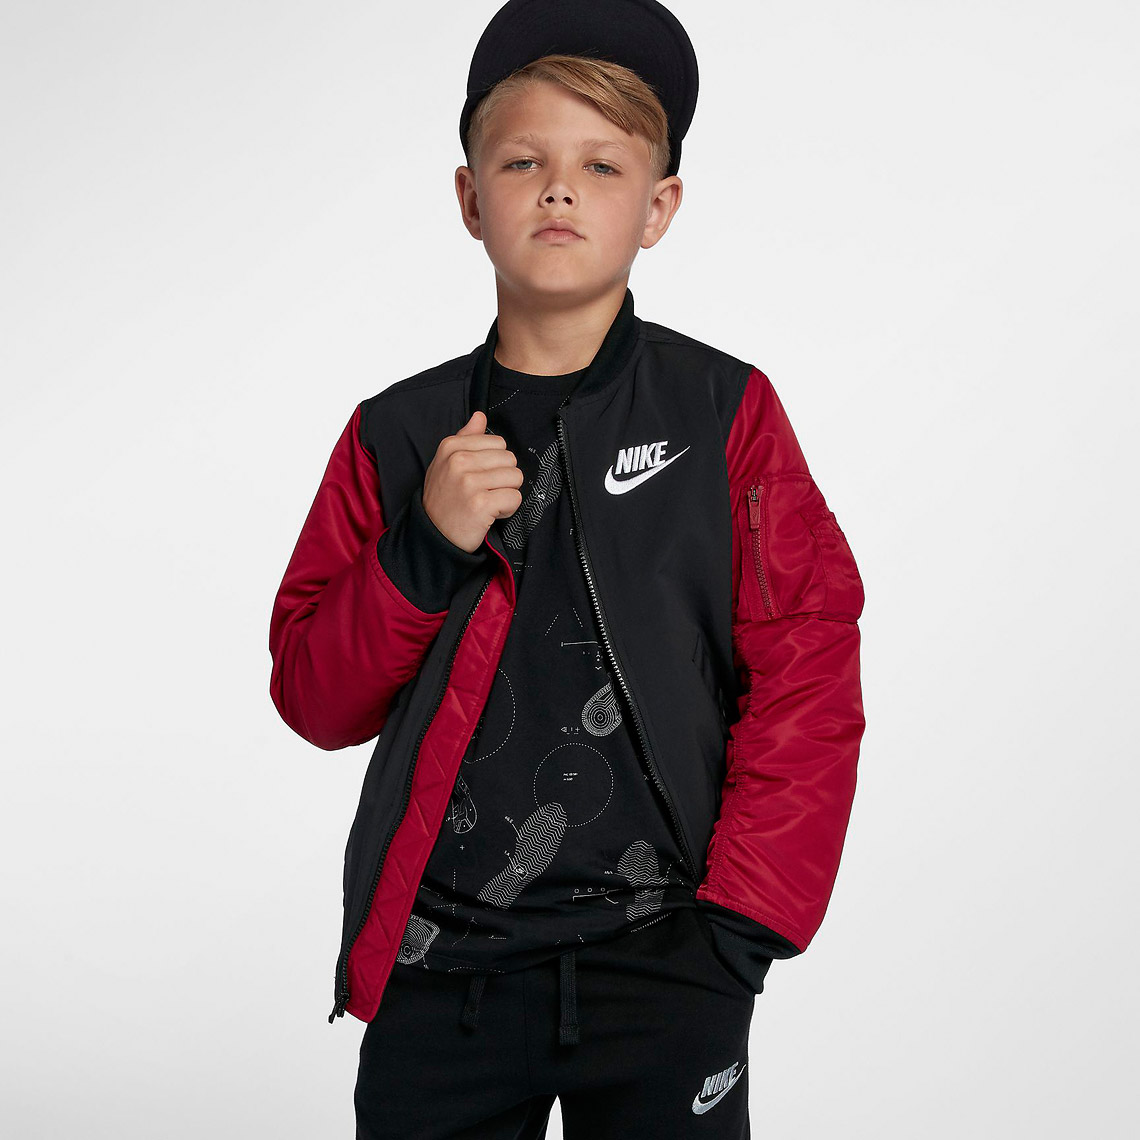 sportswear-big-kids-boys-jacket-65GkHW